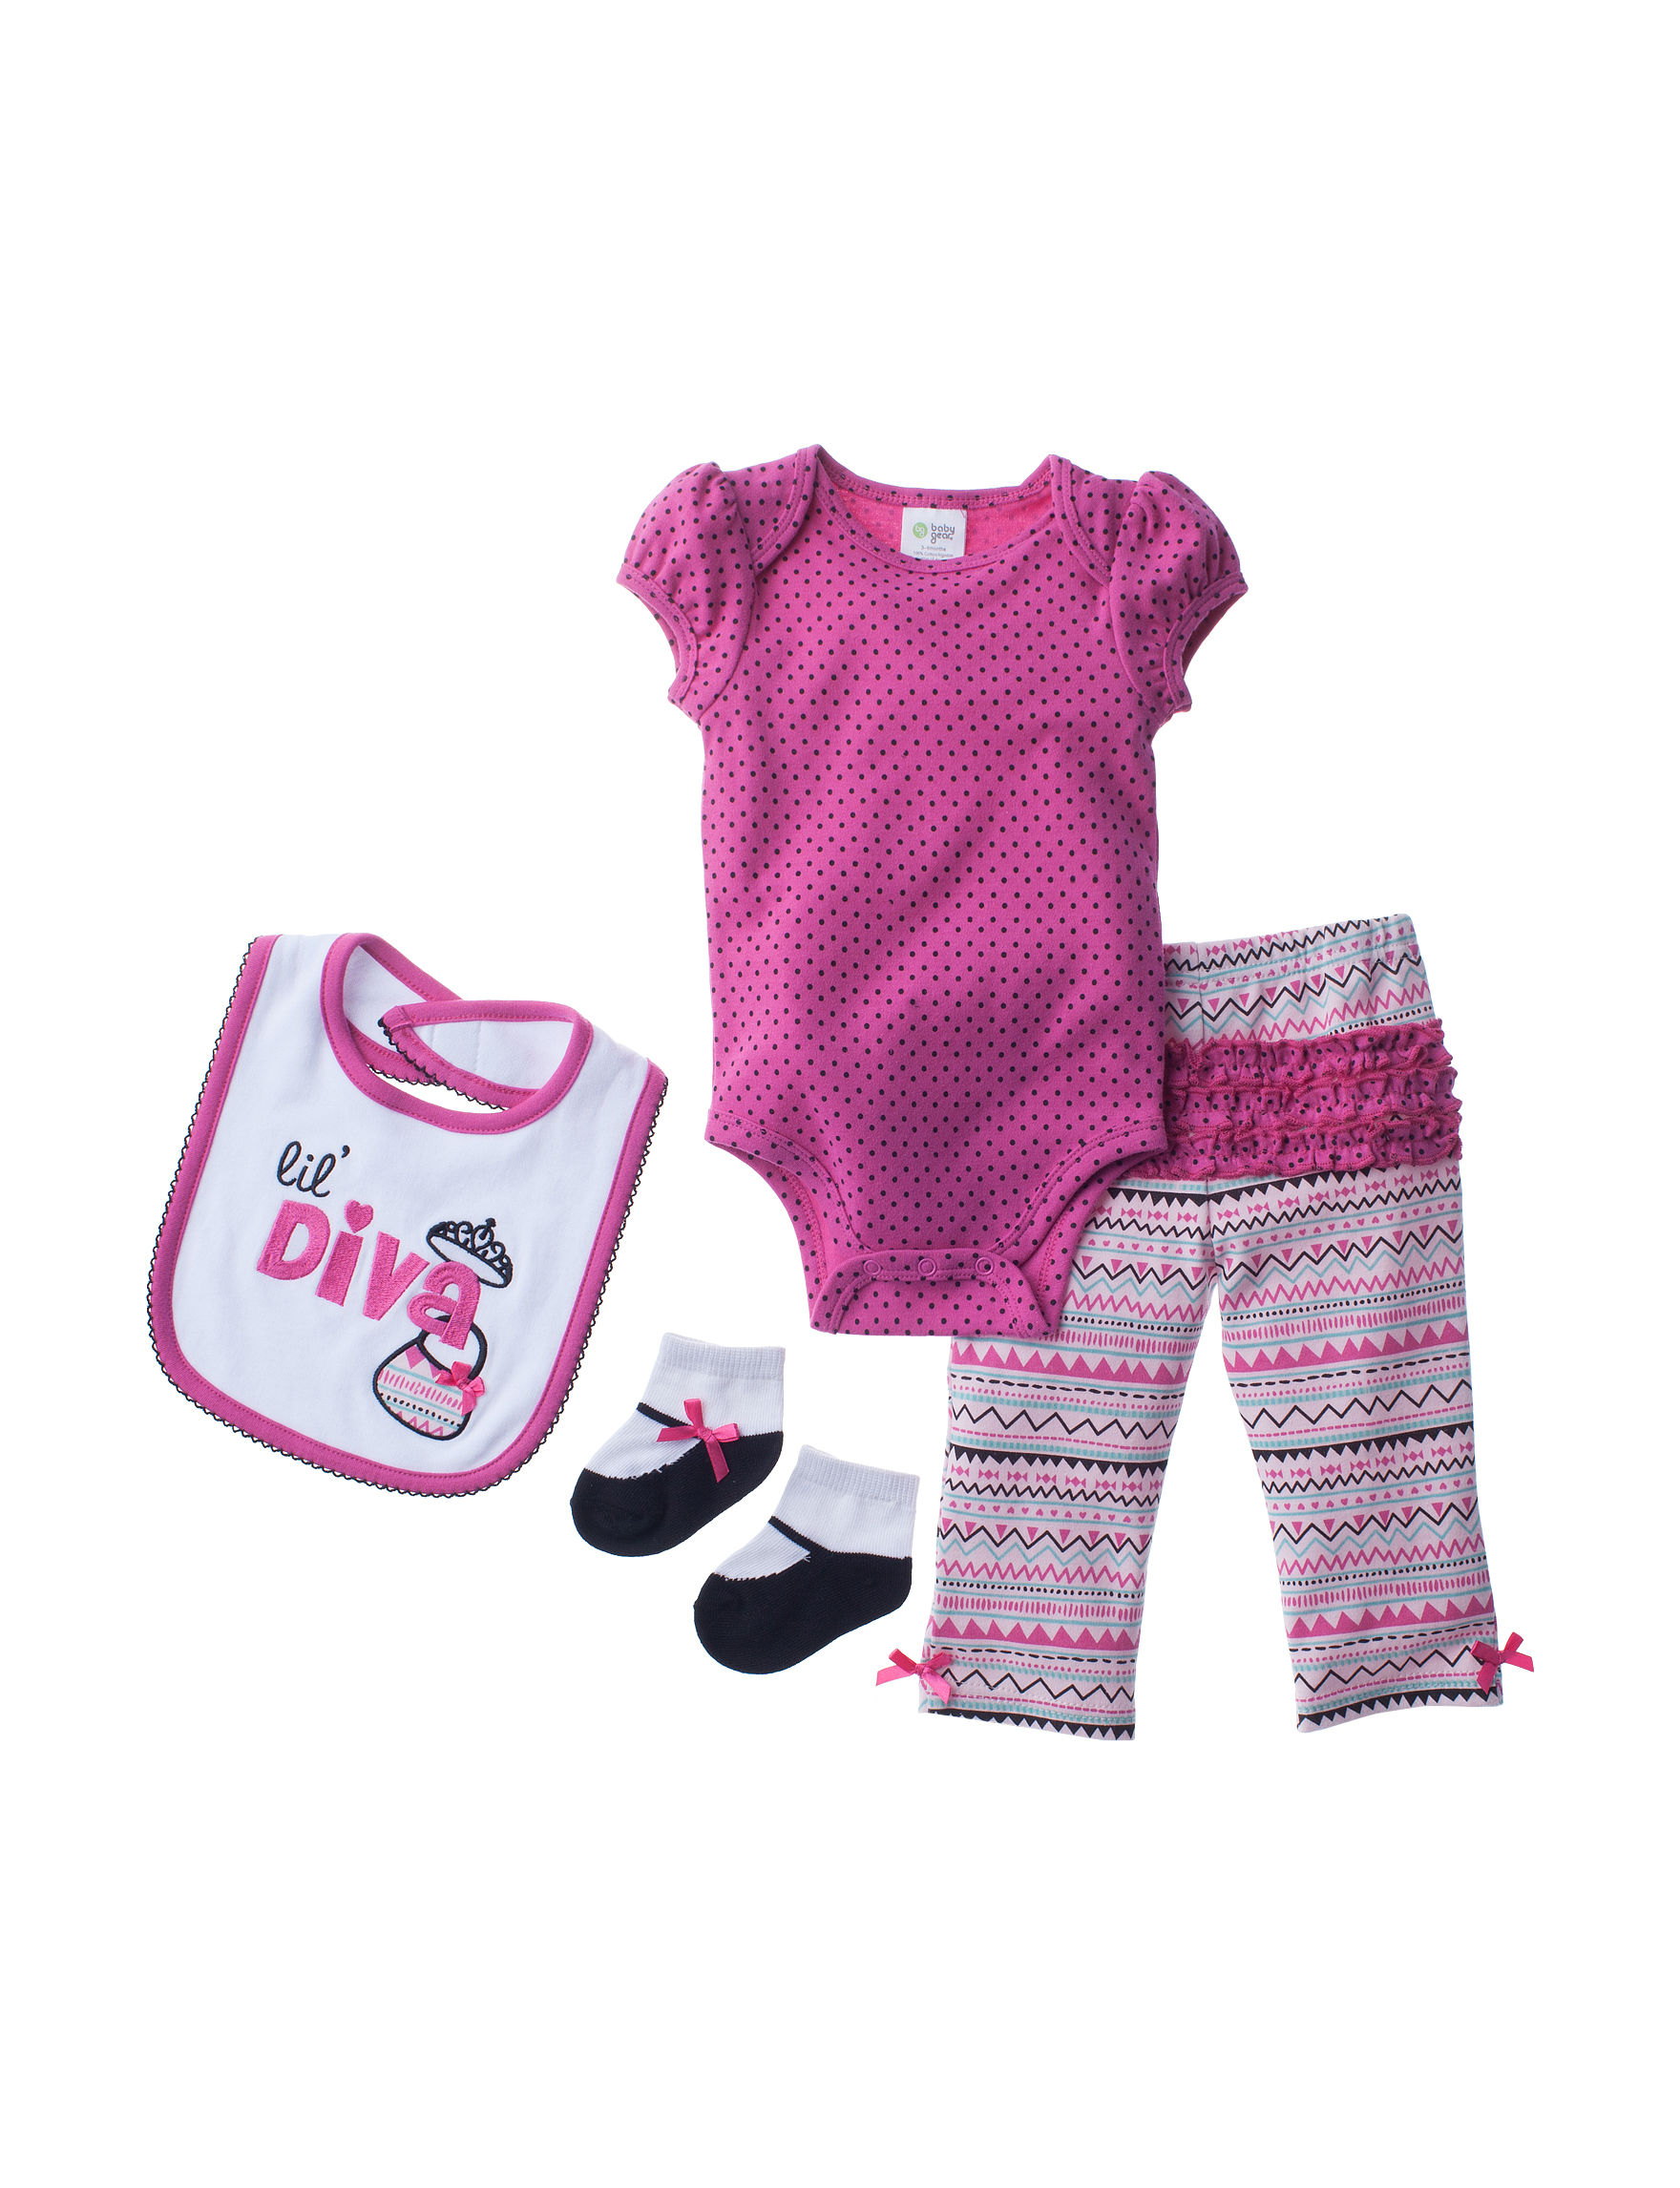 Baby Gear Fuschia